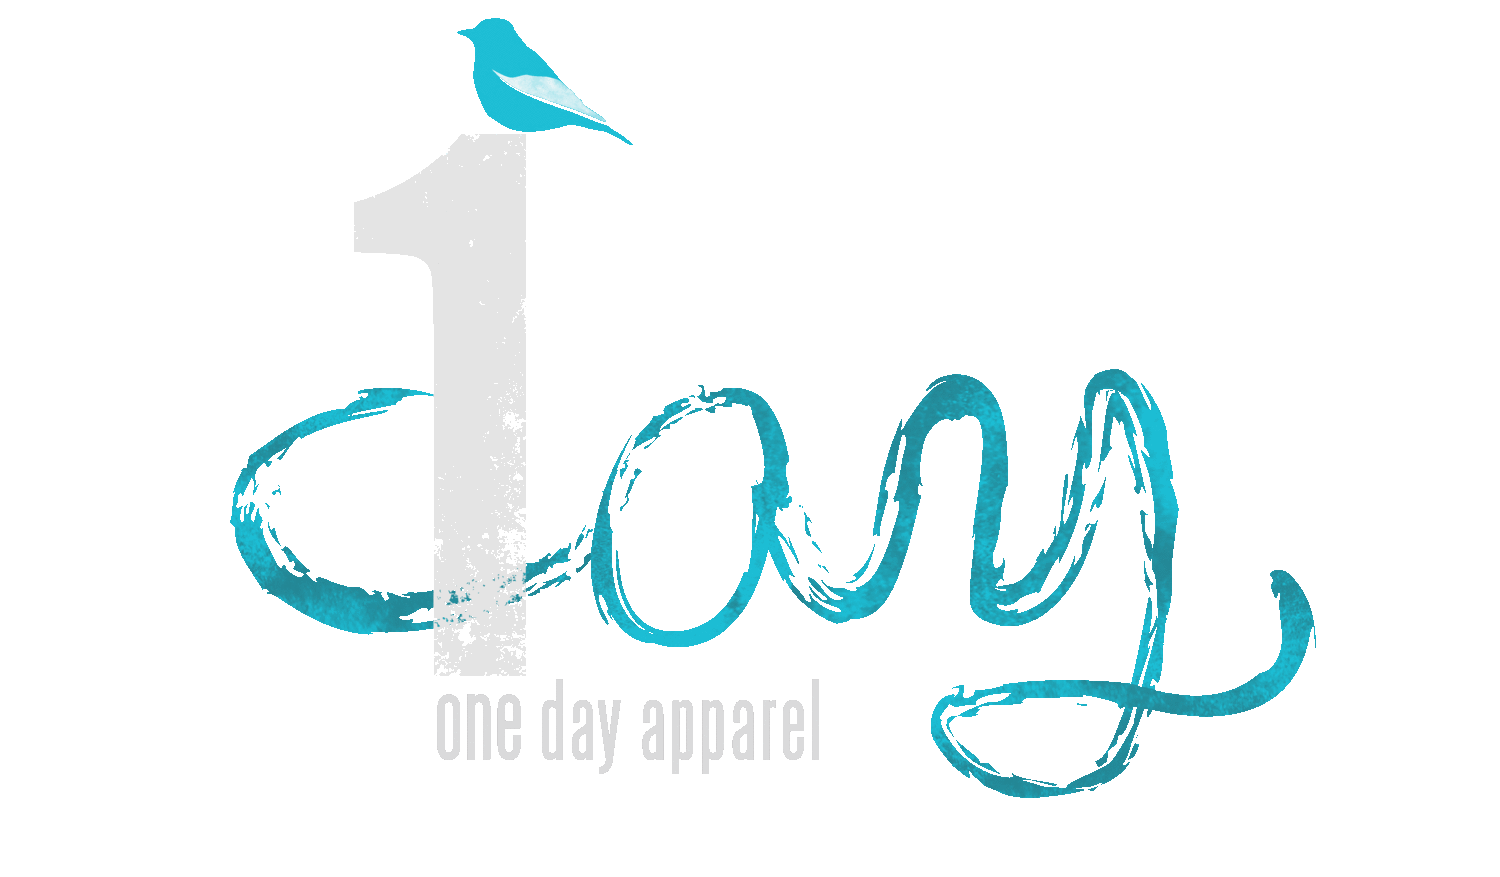 One Day Apparel